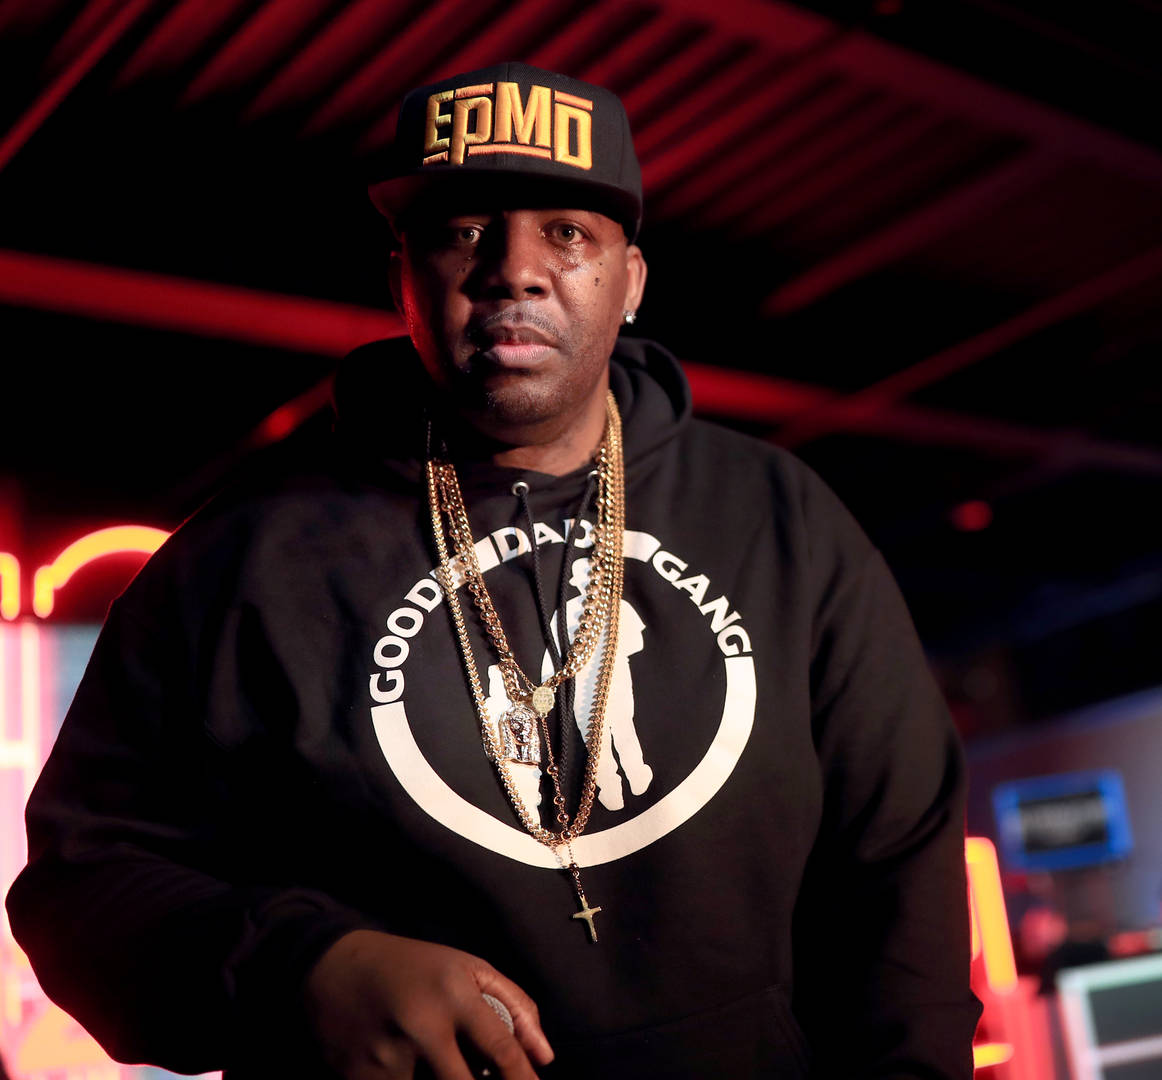 Erick  Sermon Says He Deserves Credit For Helping to Put Atlanta On The Hip Hop Map